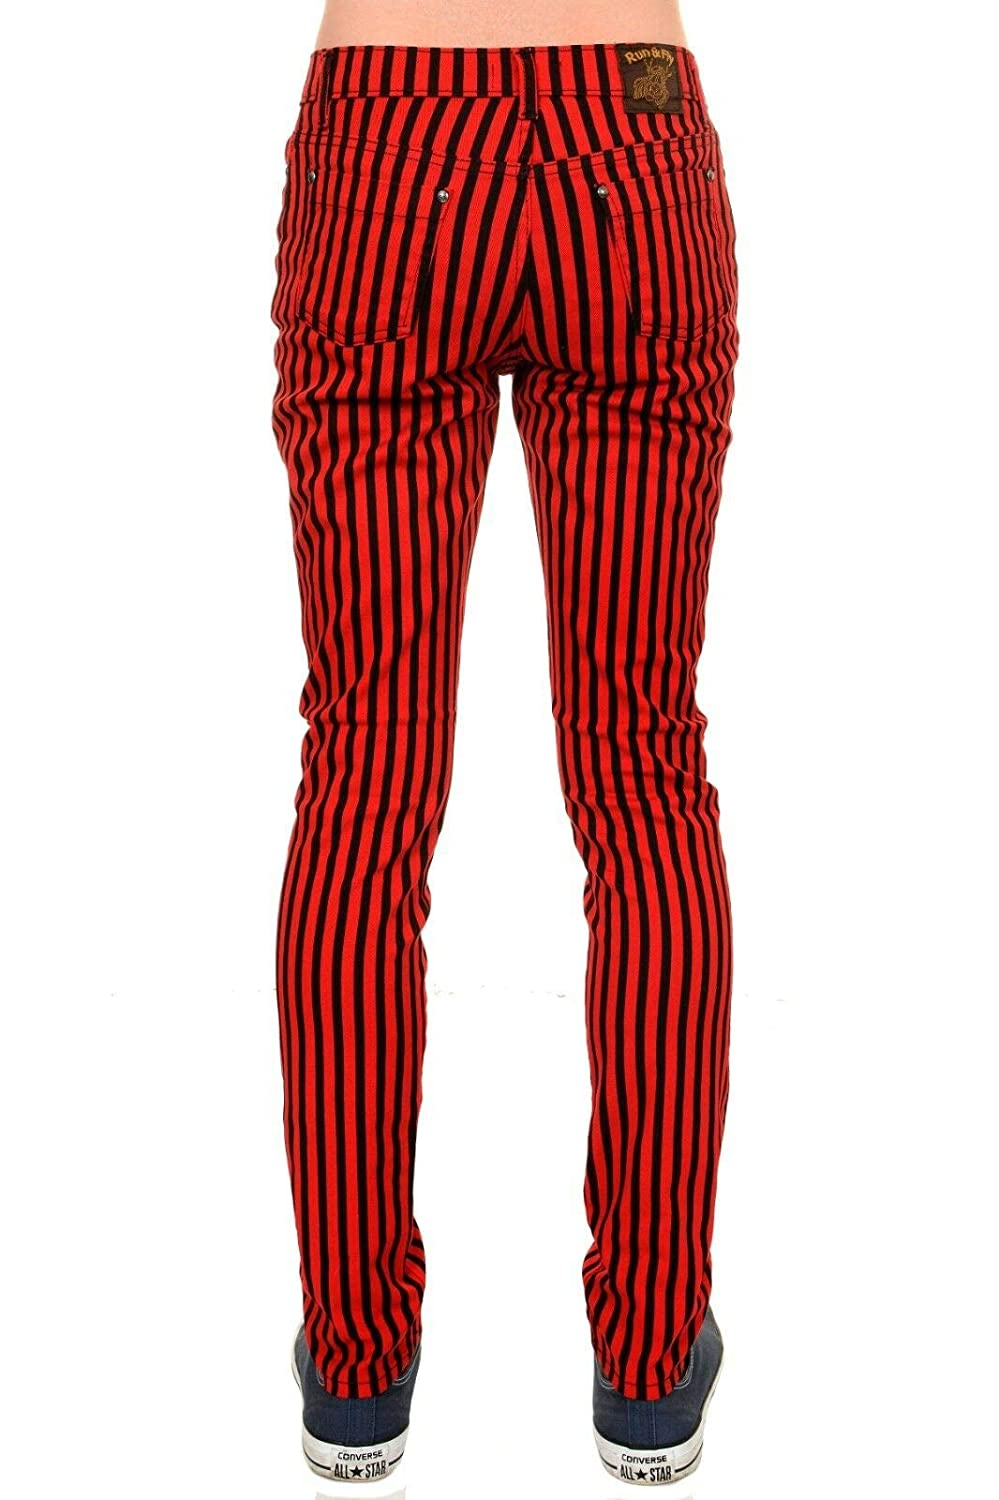 Red and black striped indie something